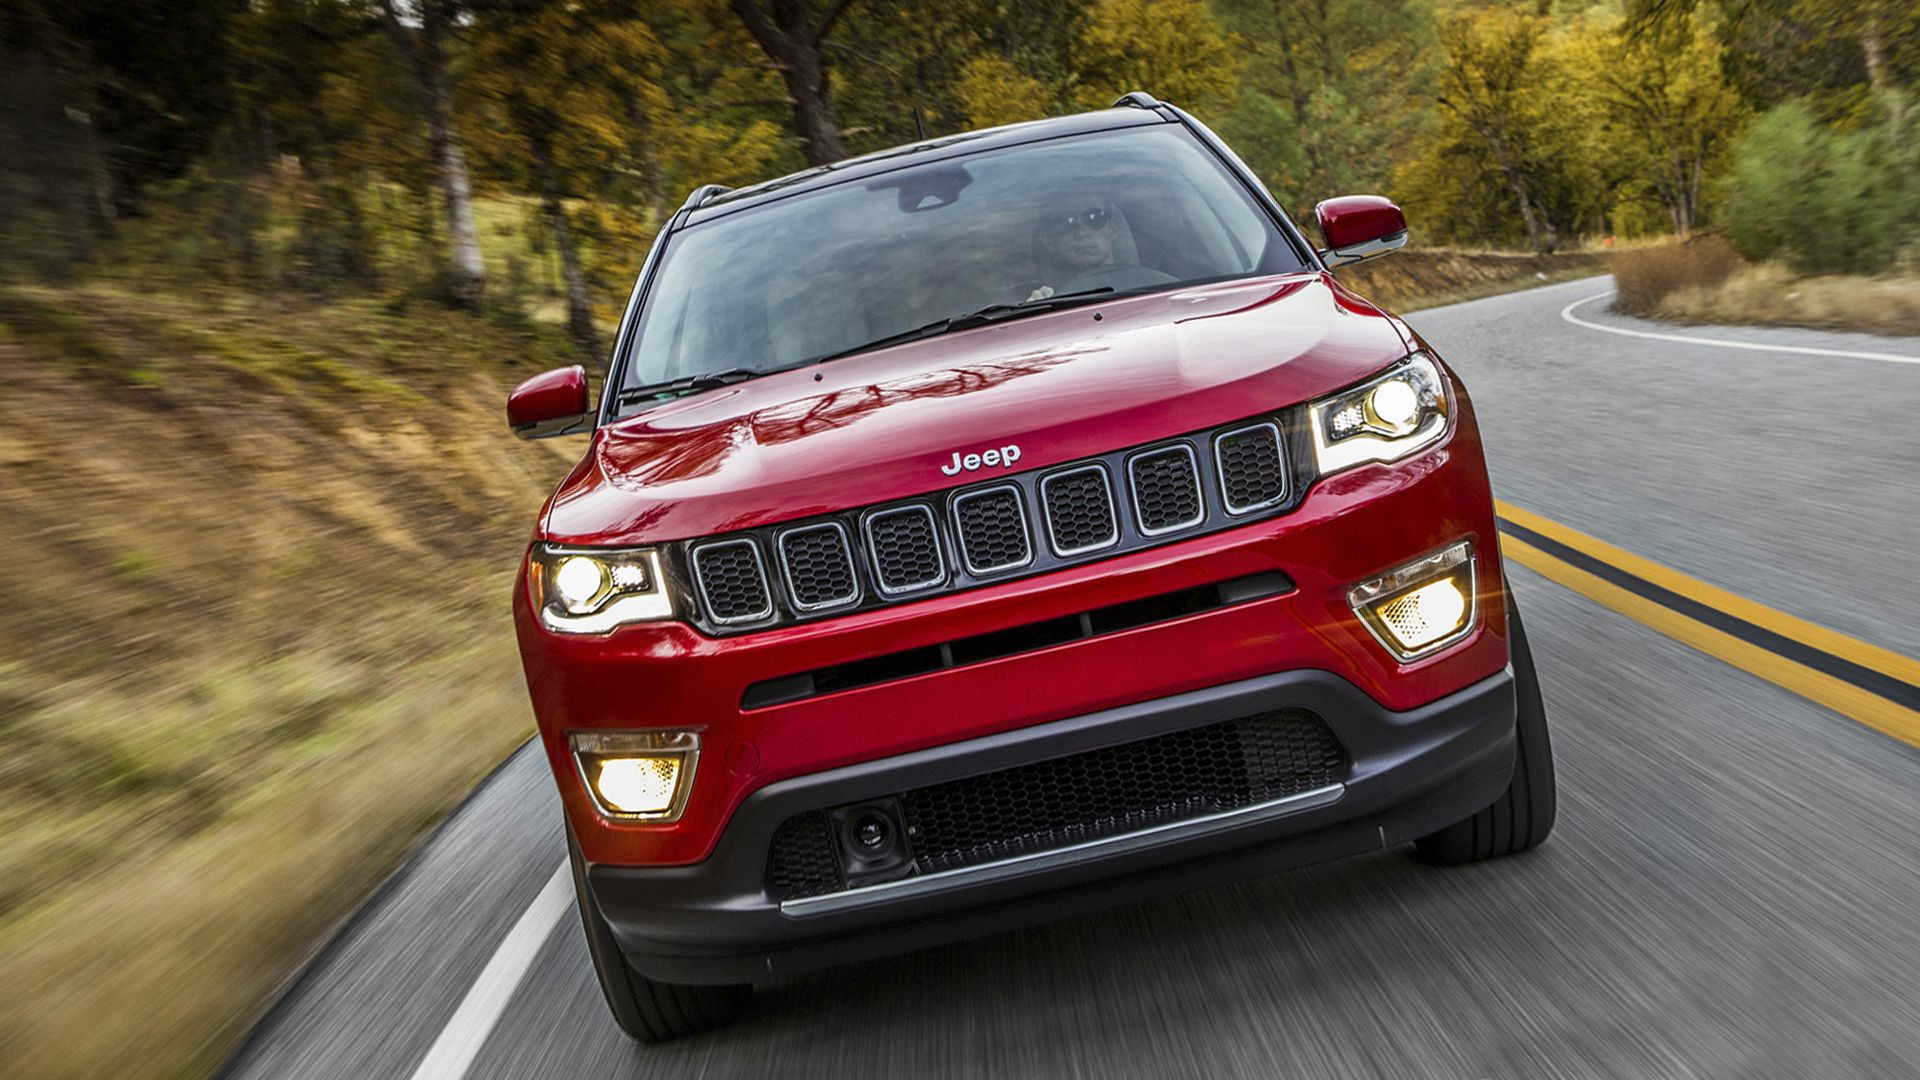 2019 Jeep Compass Wallpaper Hd Desktop Jeep Compass Compass